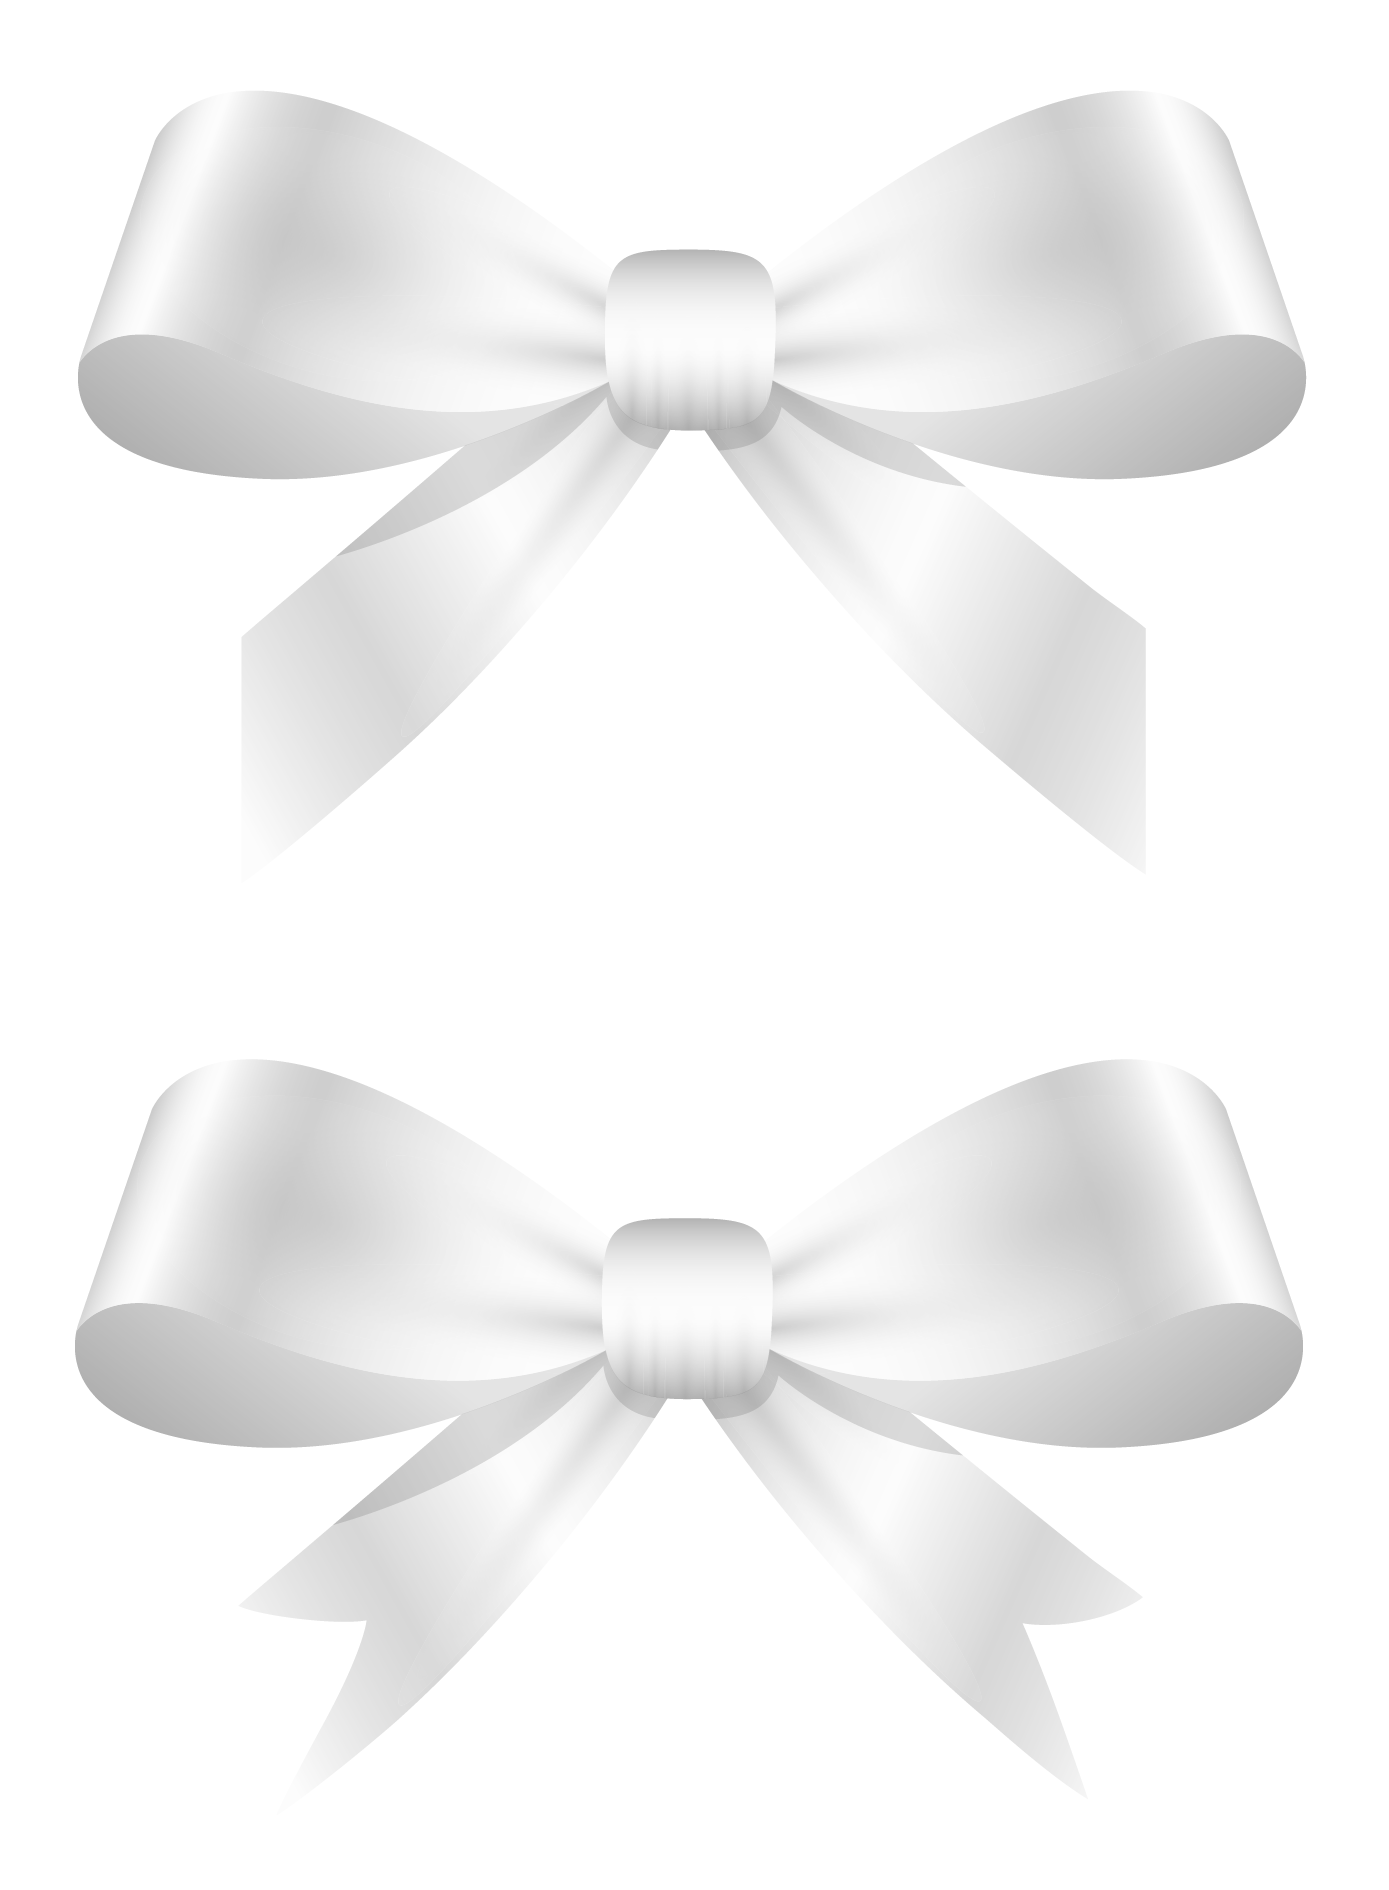 White Bows Png Clipart Picture Png 1389 1890 White Bow Alcohol Ink Crafts Bows